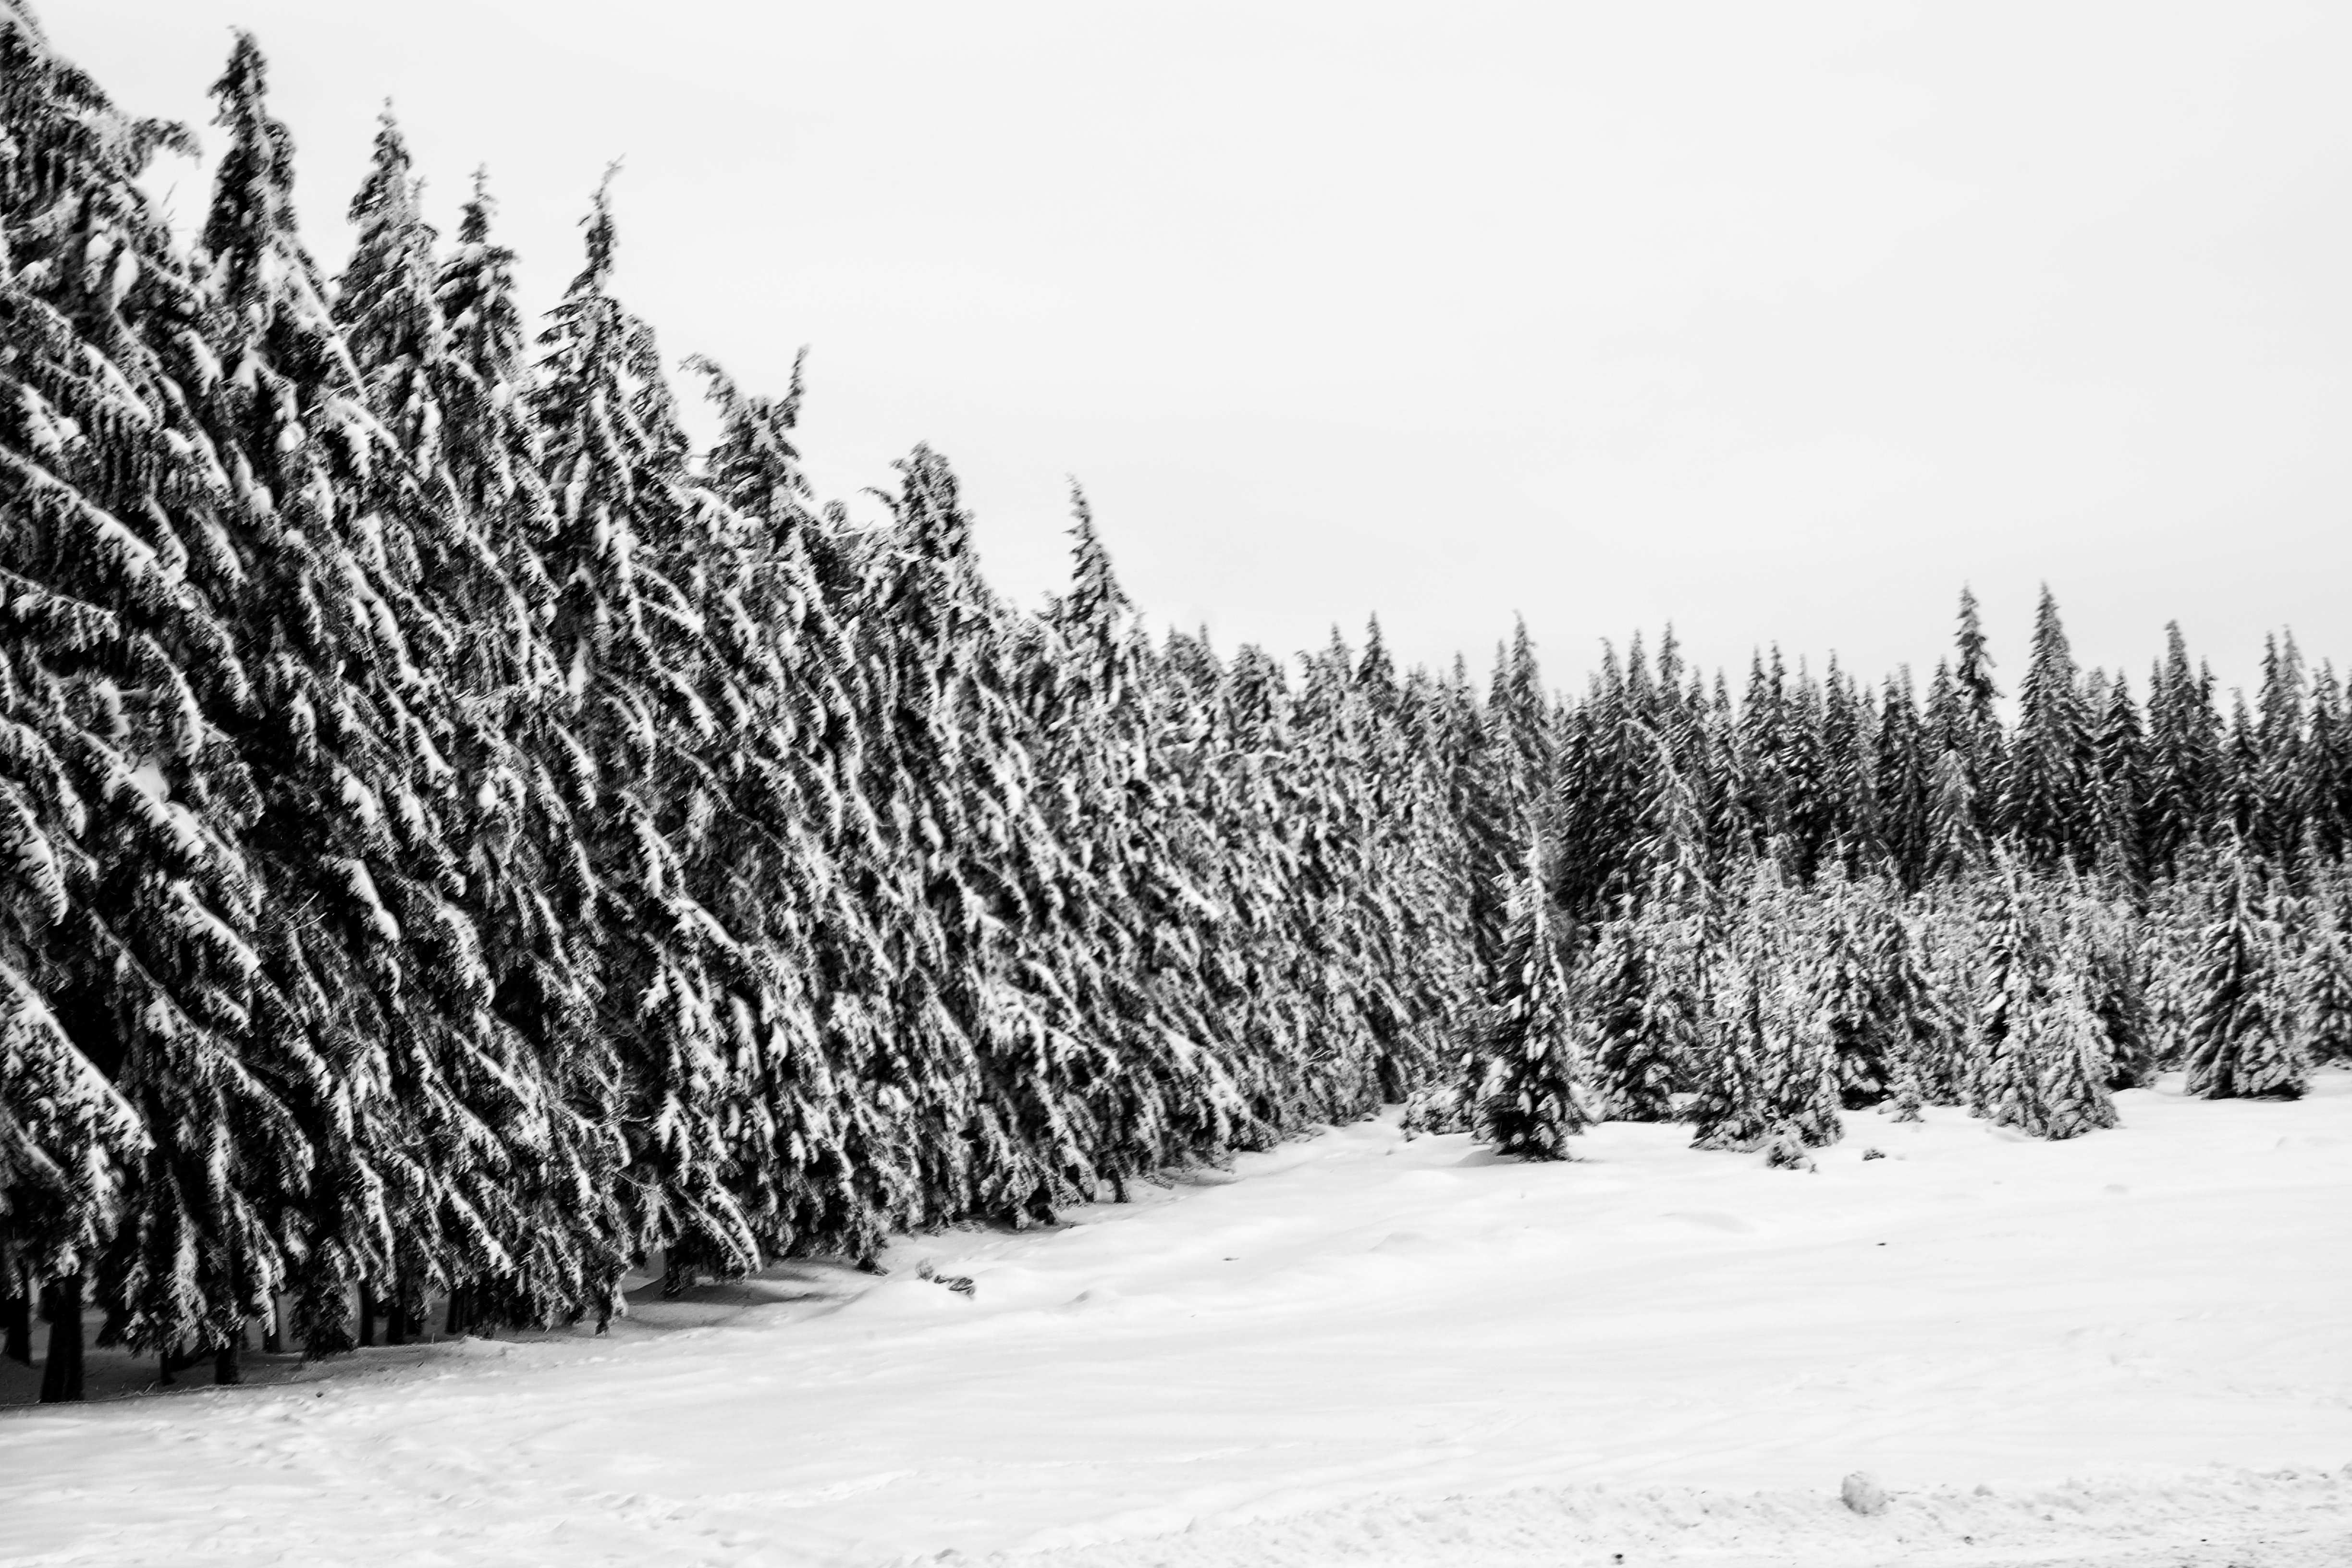 Snowy field and trees photo